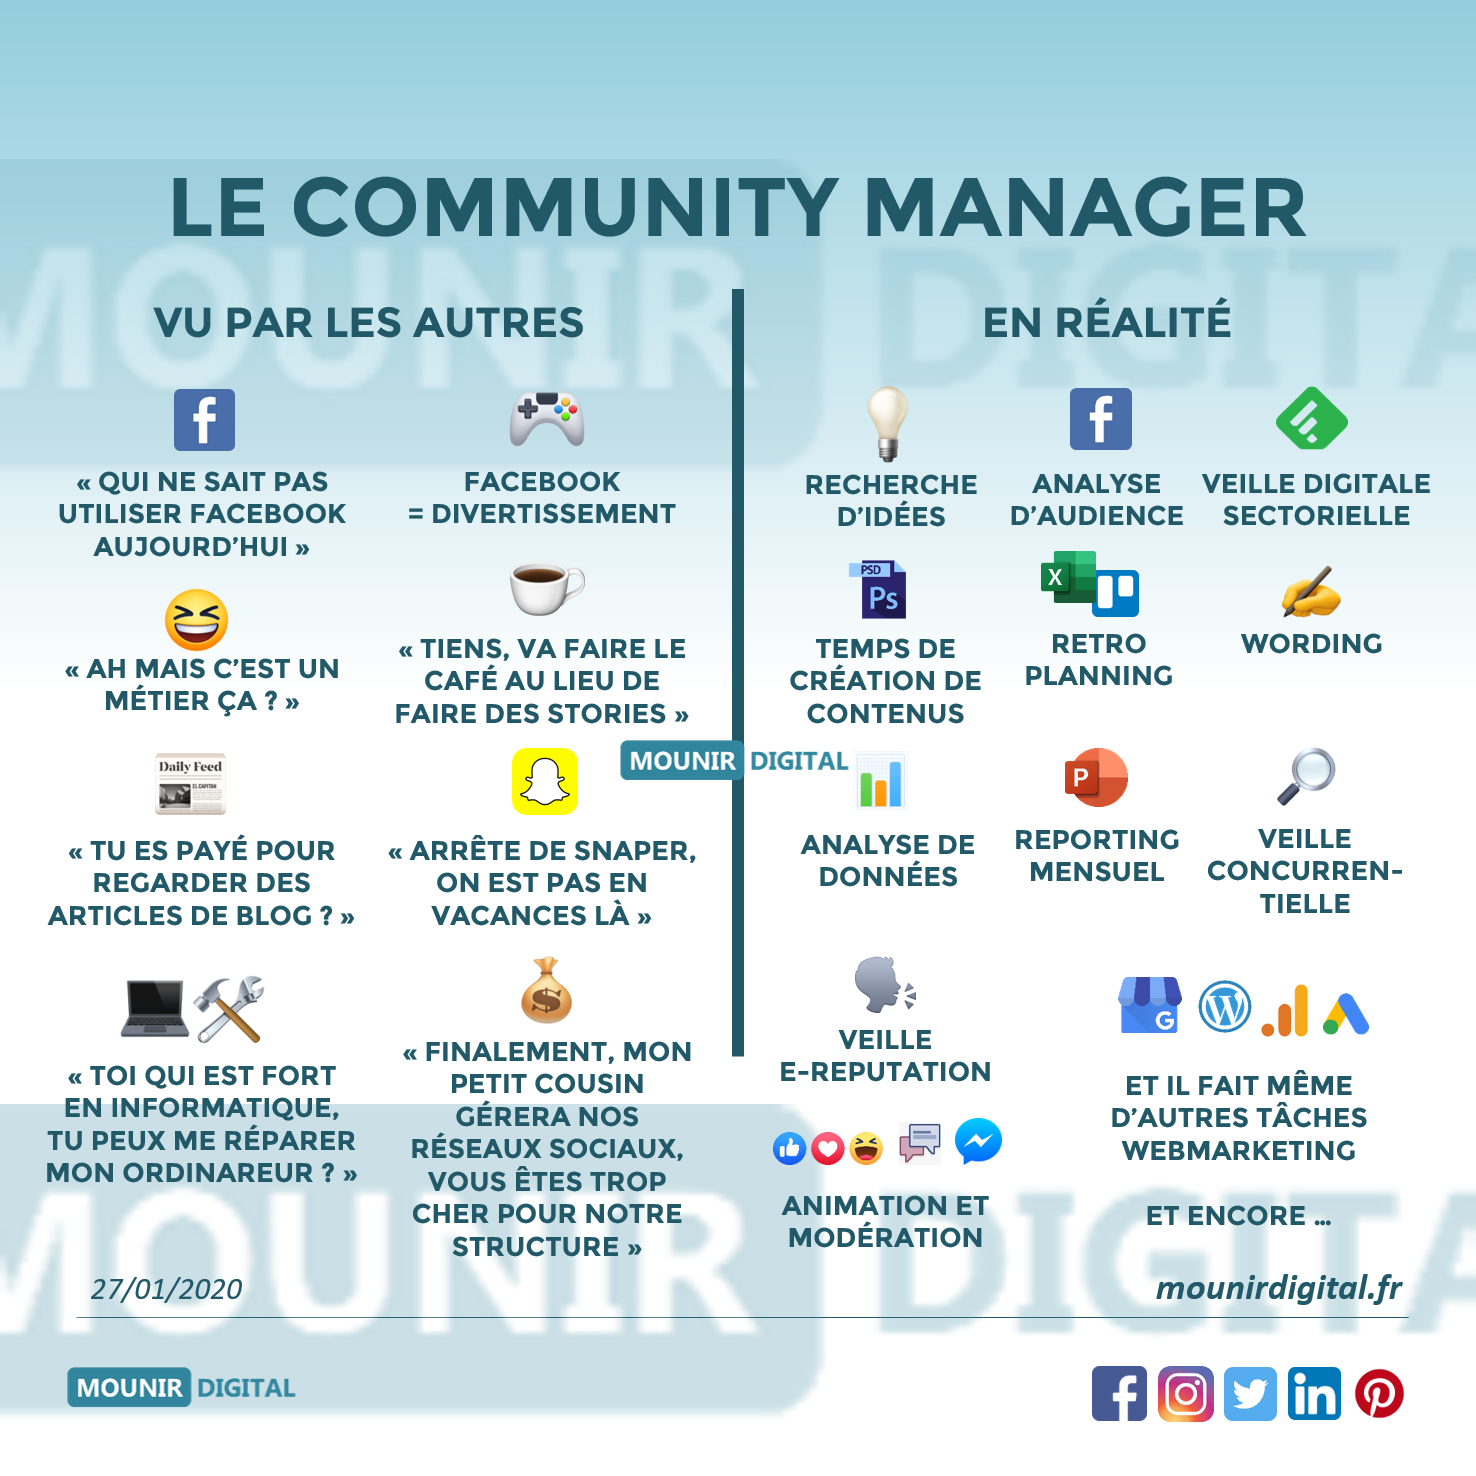 Mounir Digital - Contenu original - Se démarquer sur LinkedIn - Mounir Digital